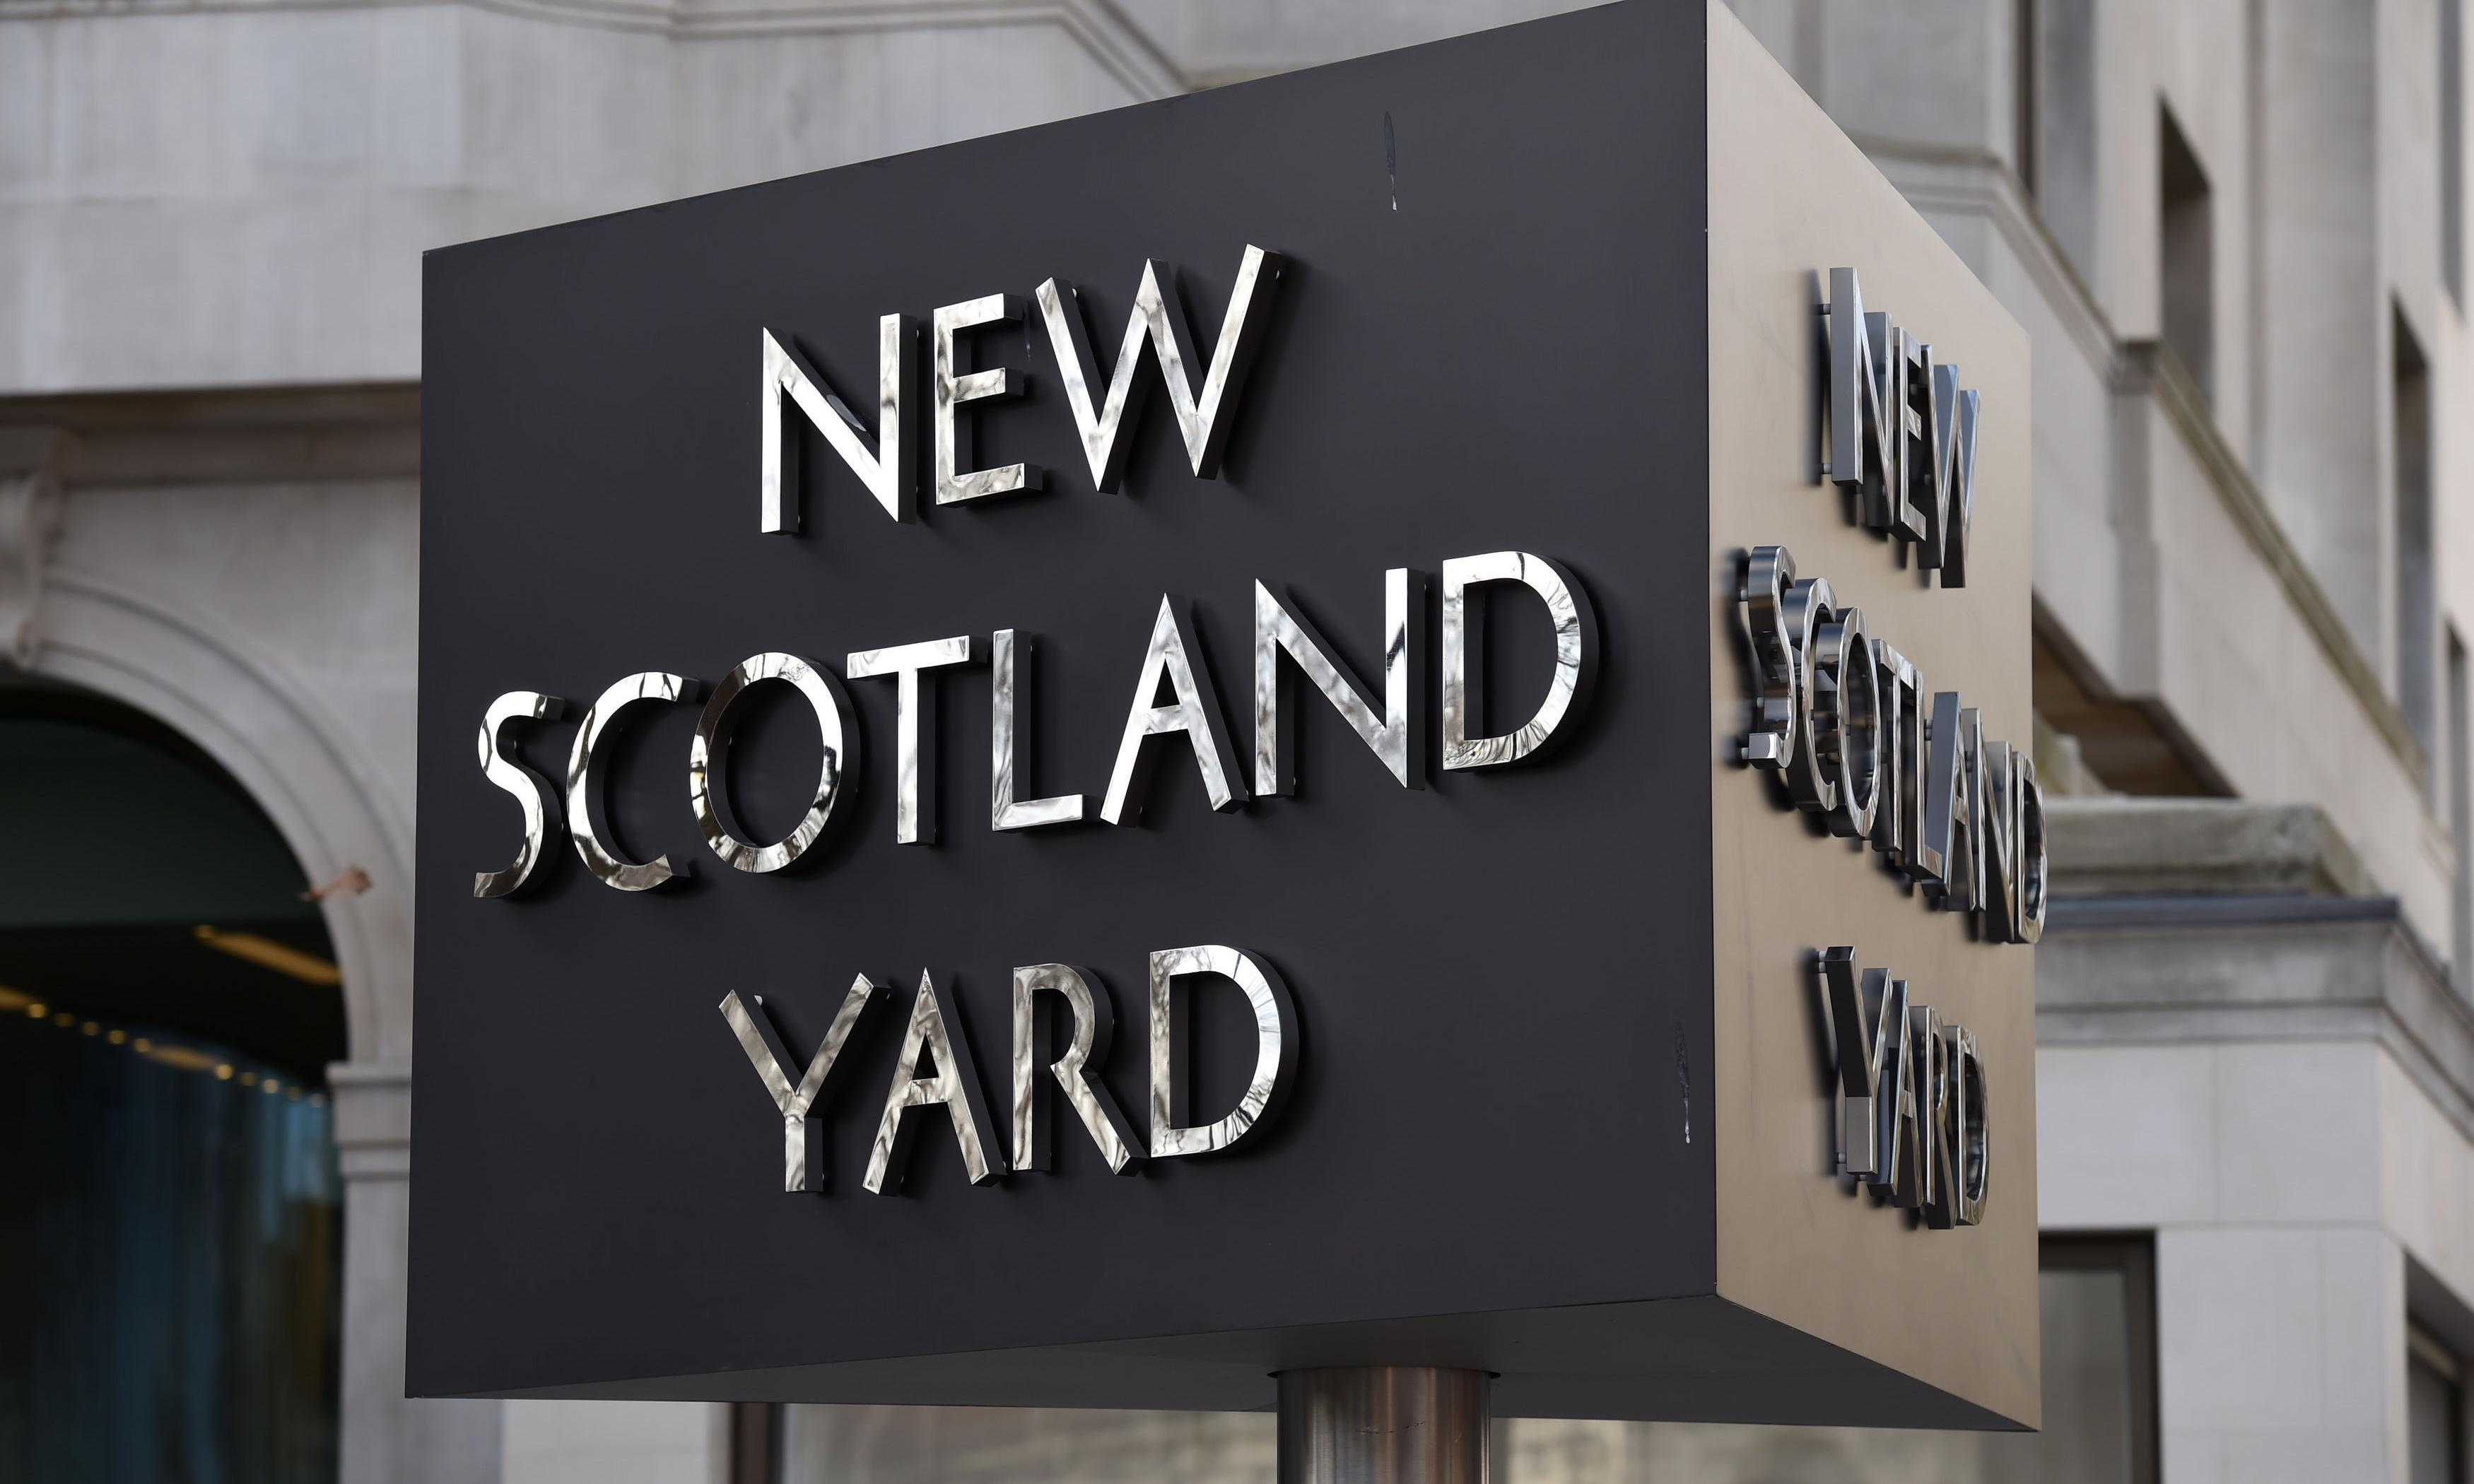 Scotland Yard's Twitter account breached in series of bizarre posts